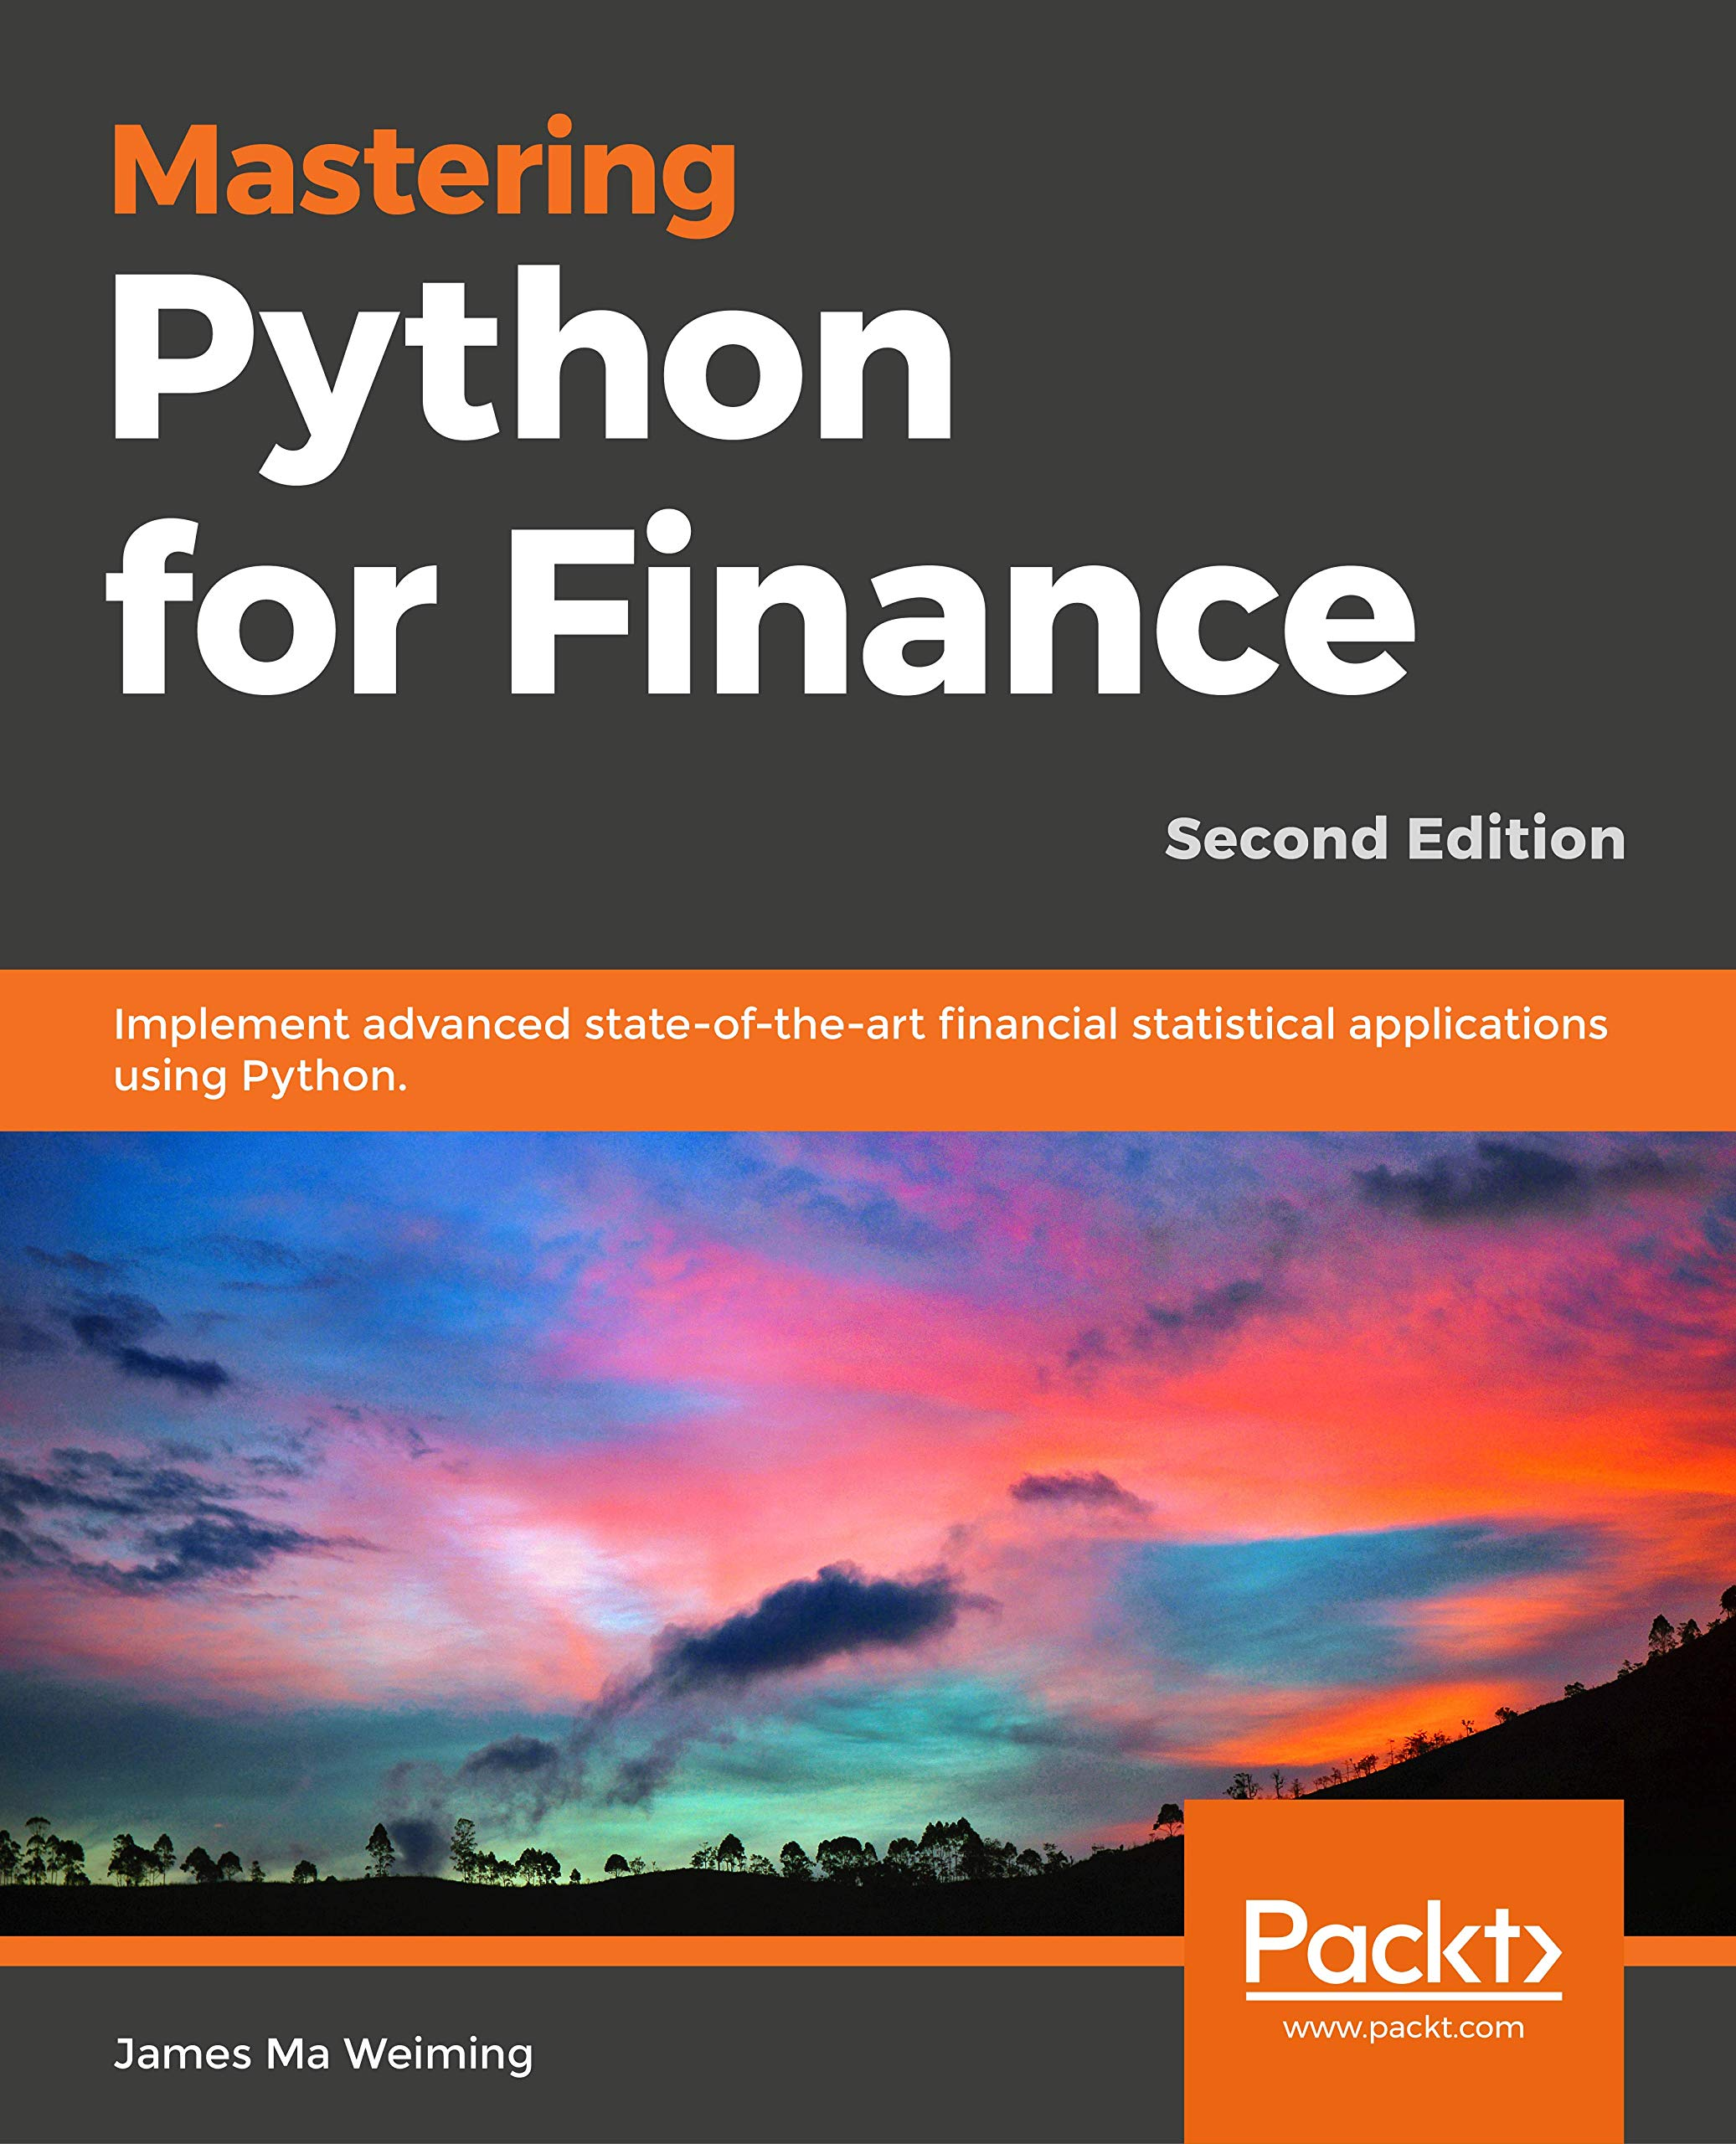 Mastering Python for Finance- Second Edition: Implement